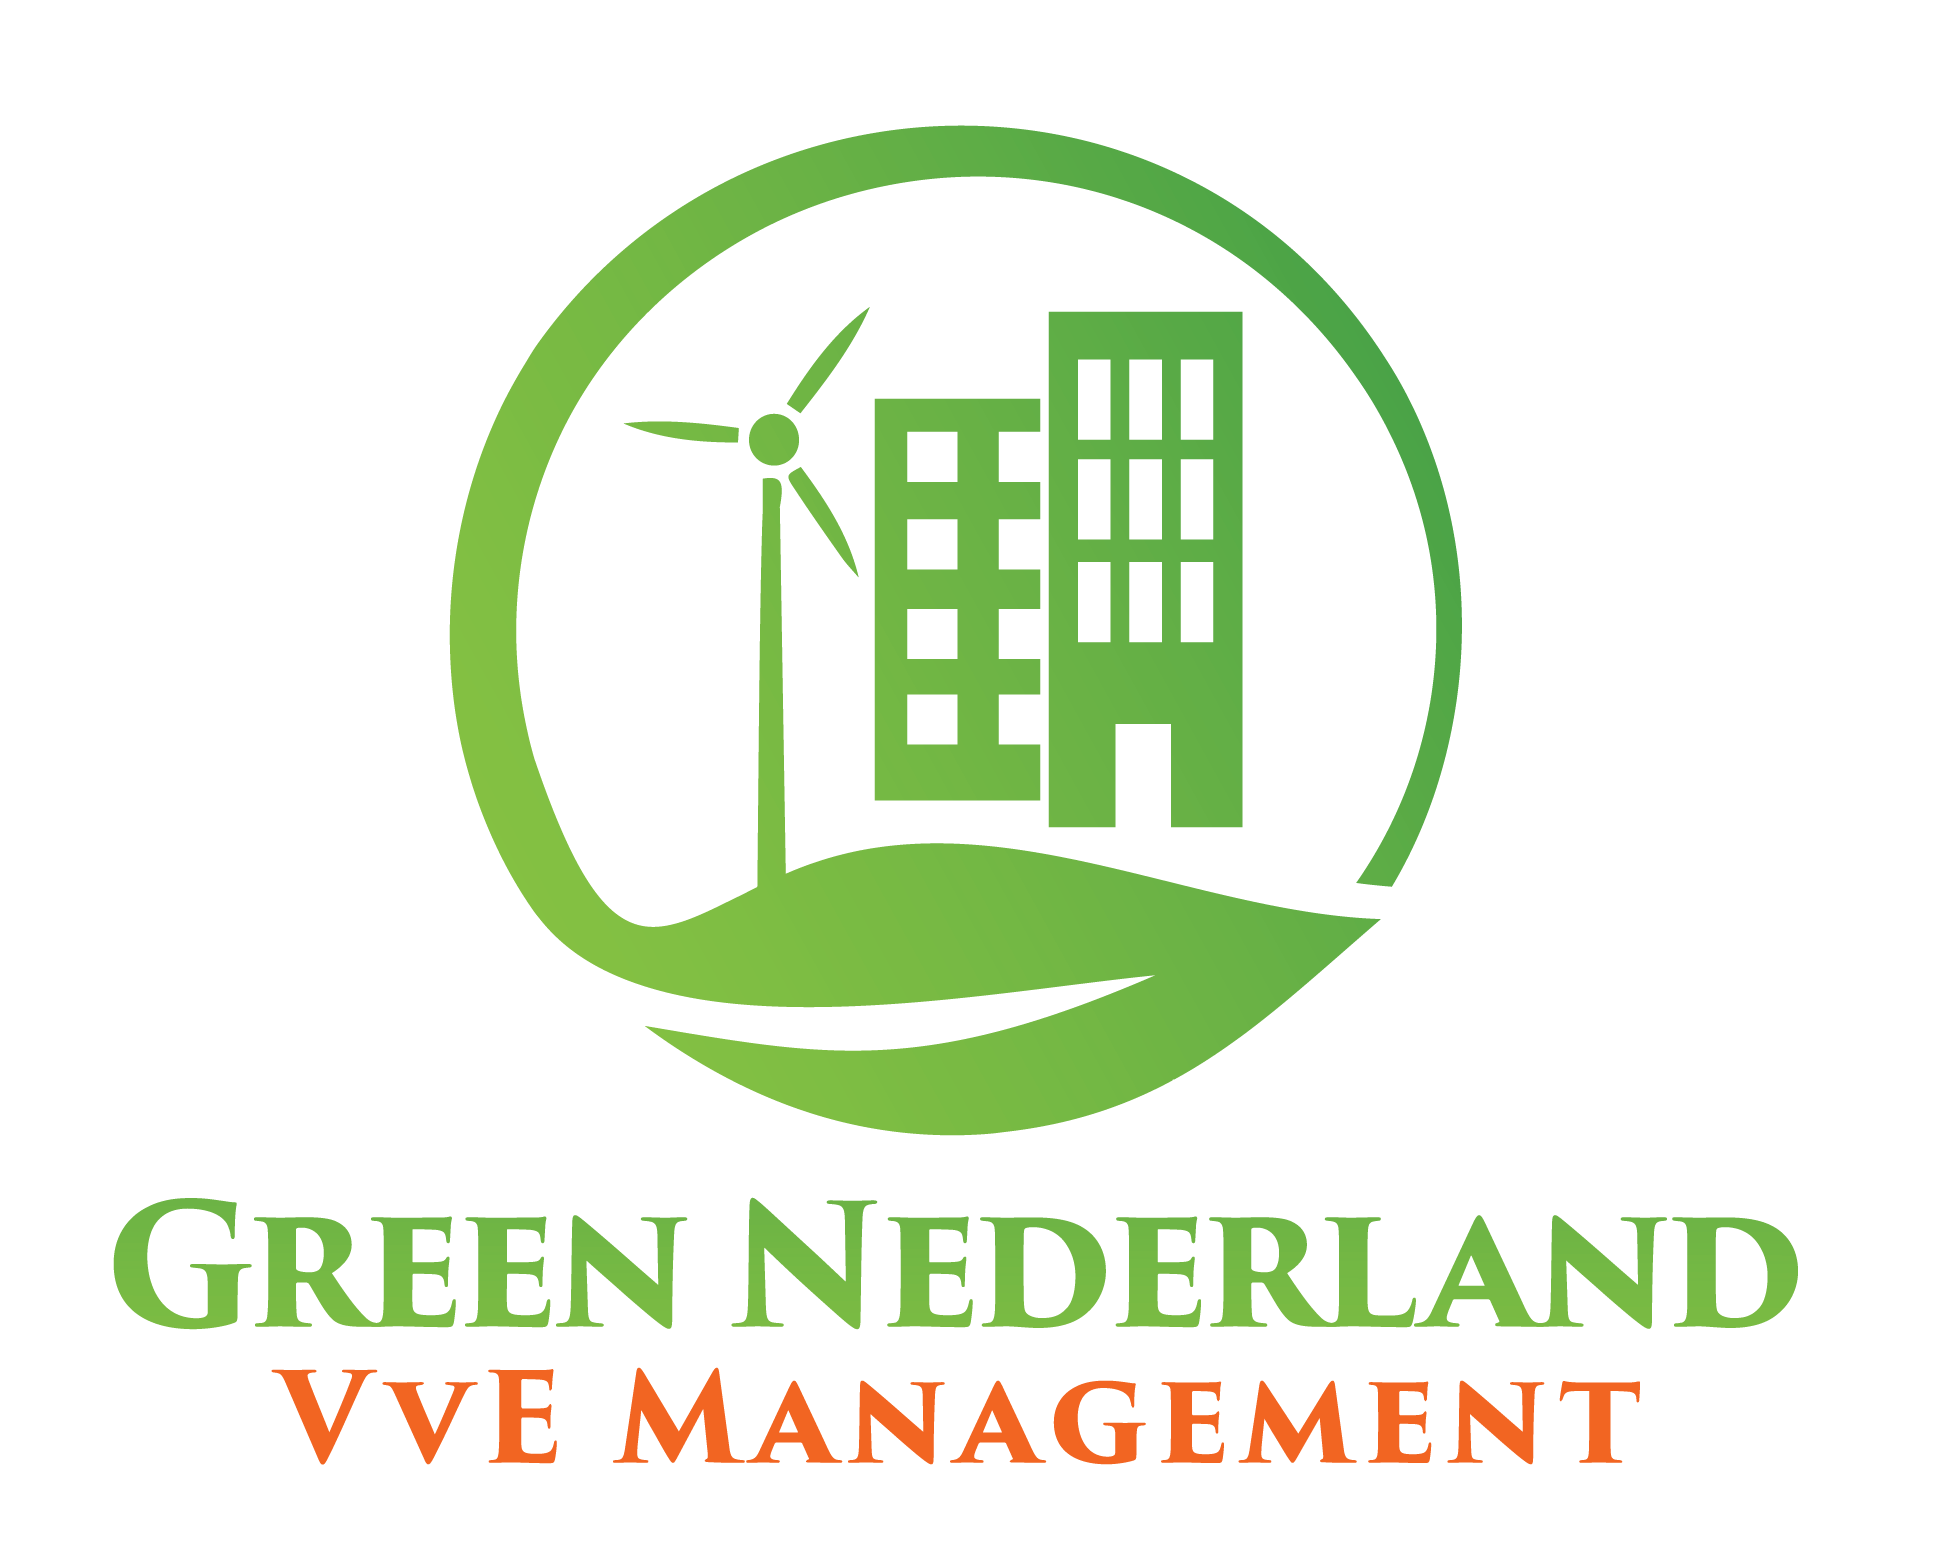 Green Nederland VvE Management